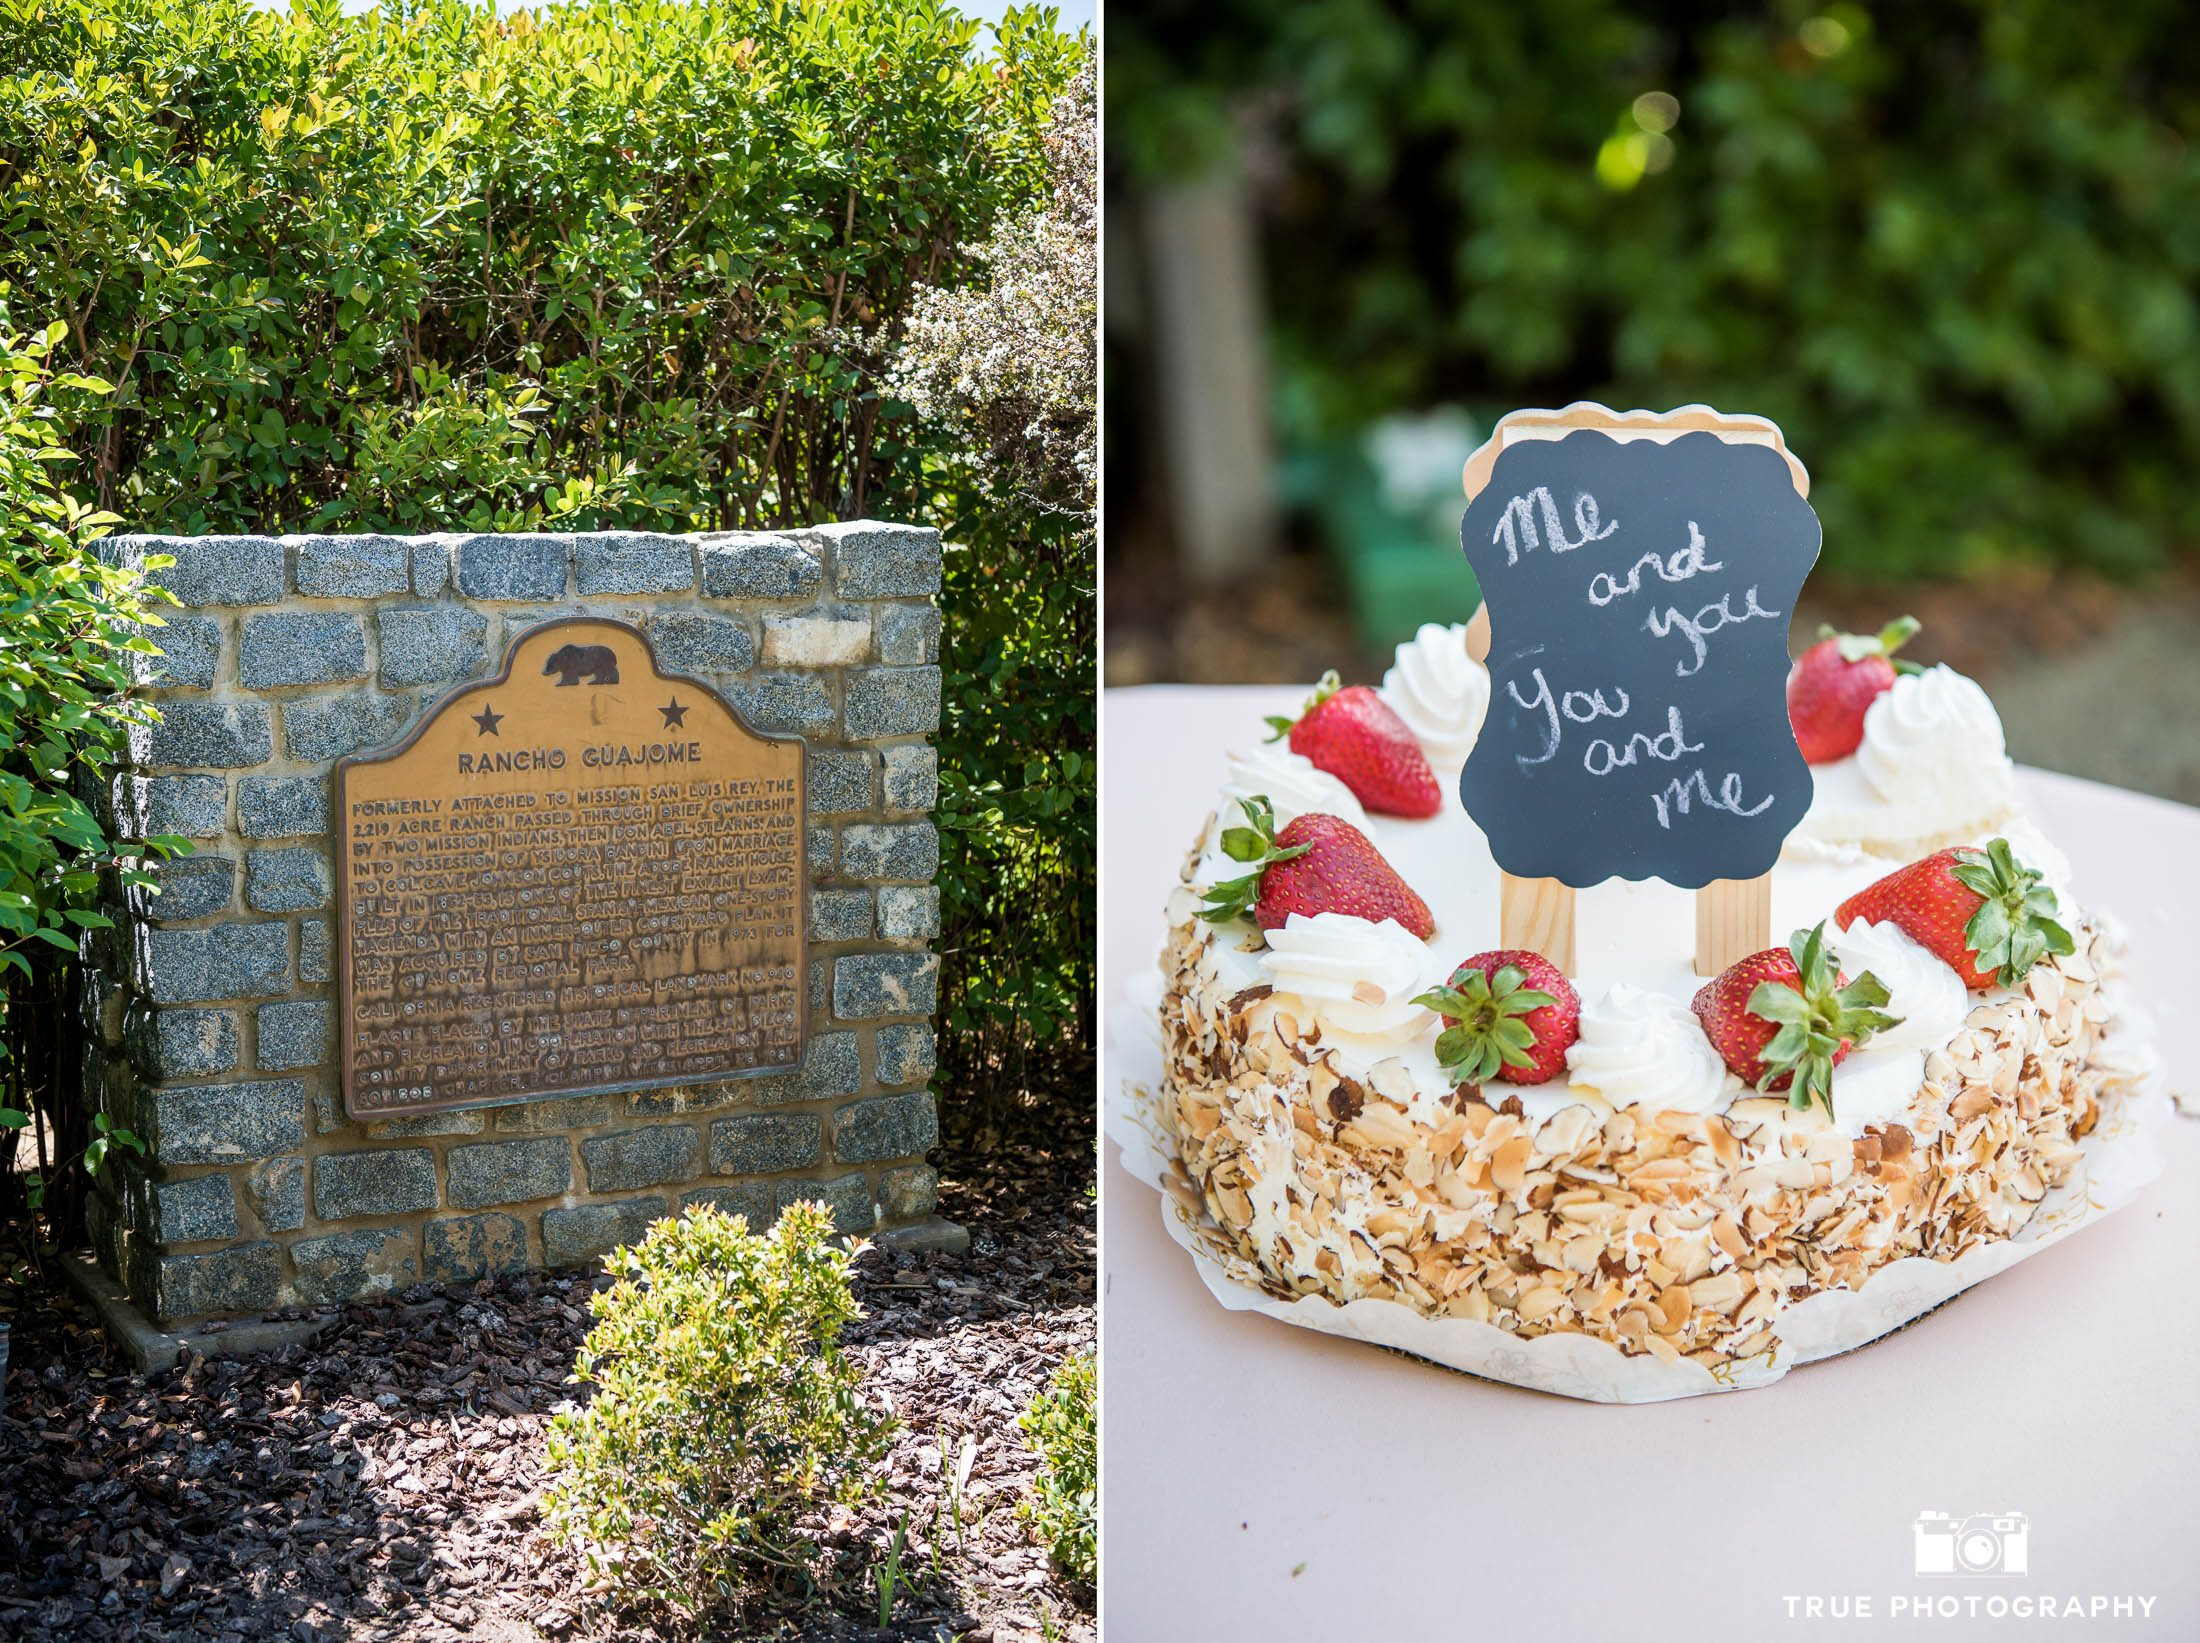 Rustic-inspired wedding cake during wedding at Spanish-style venue